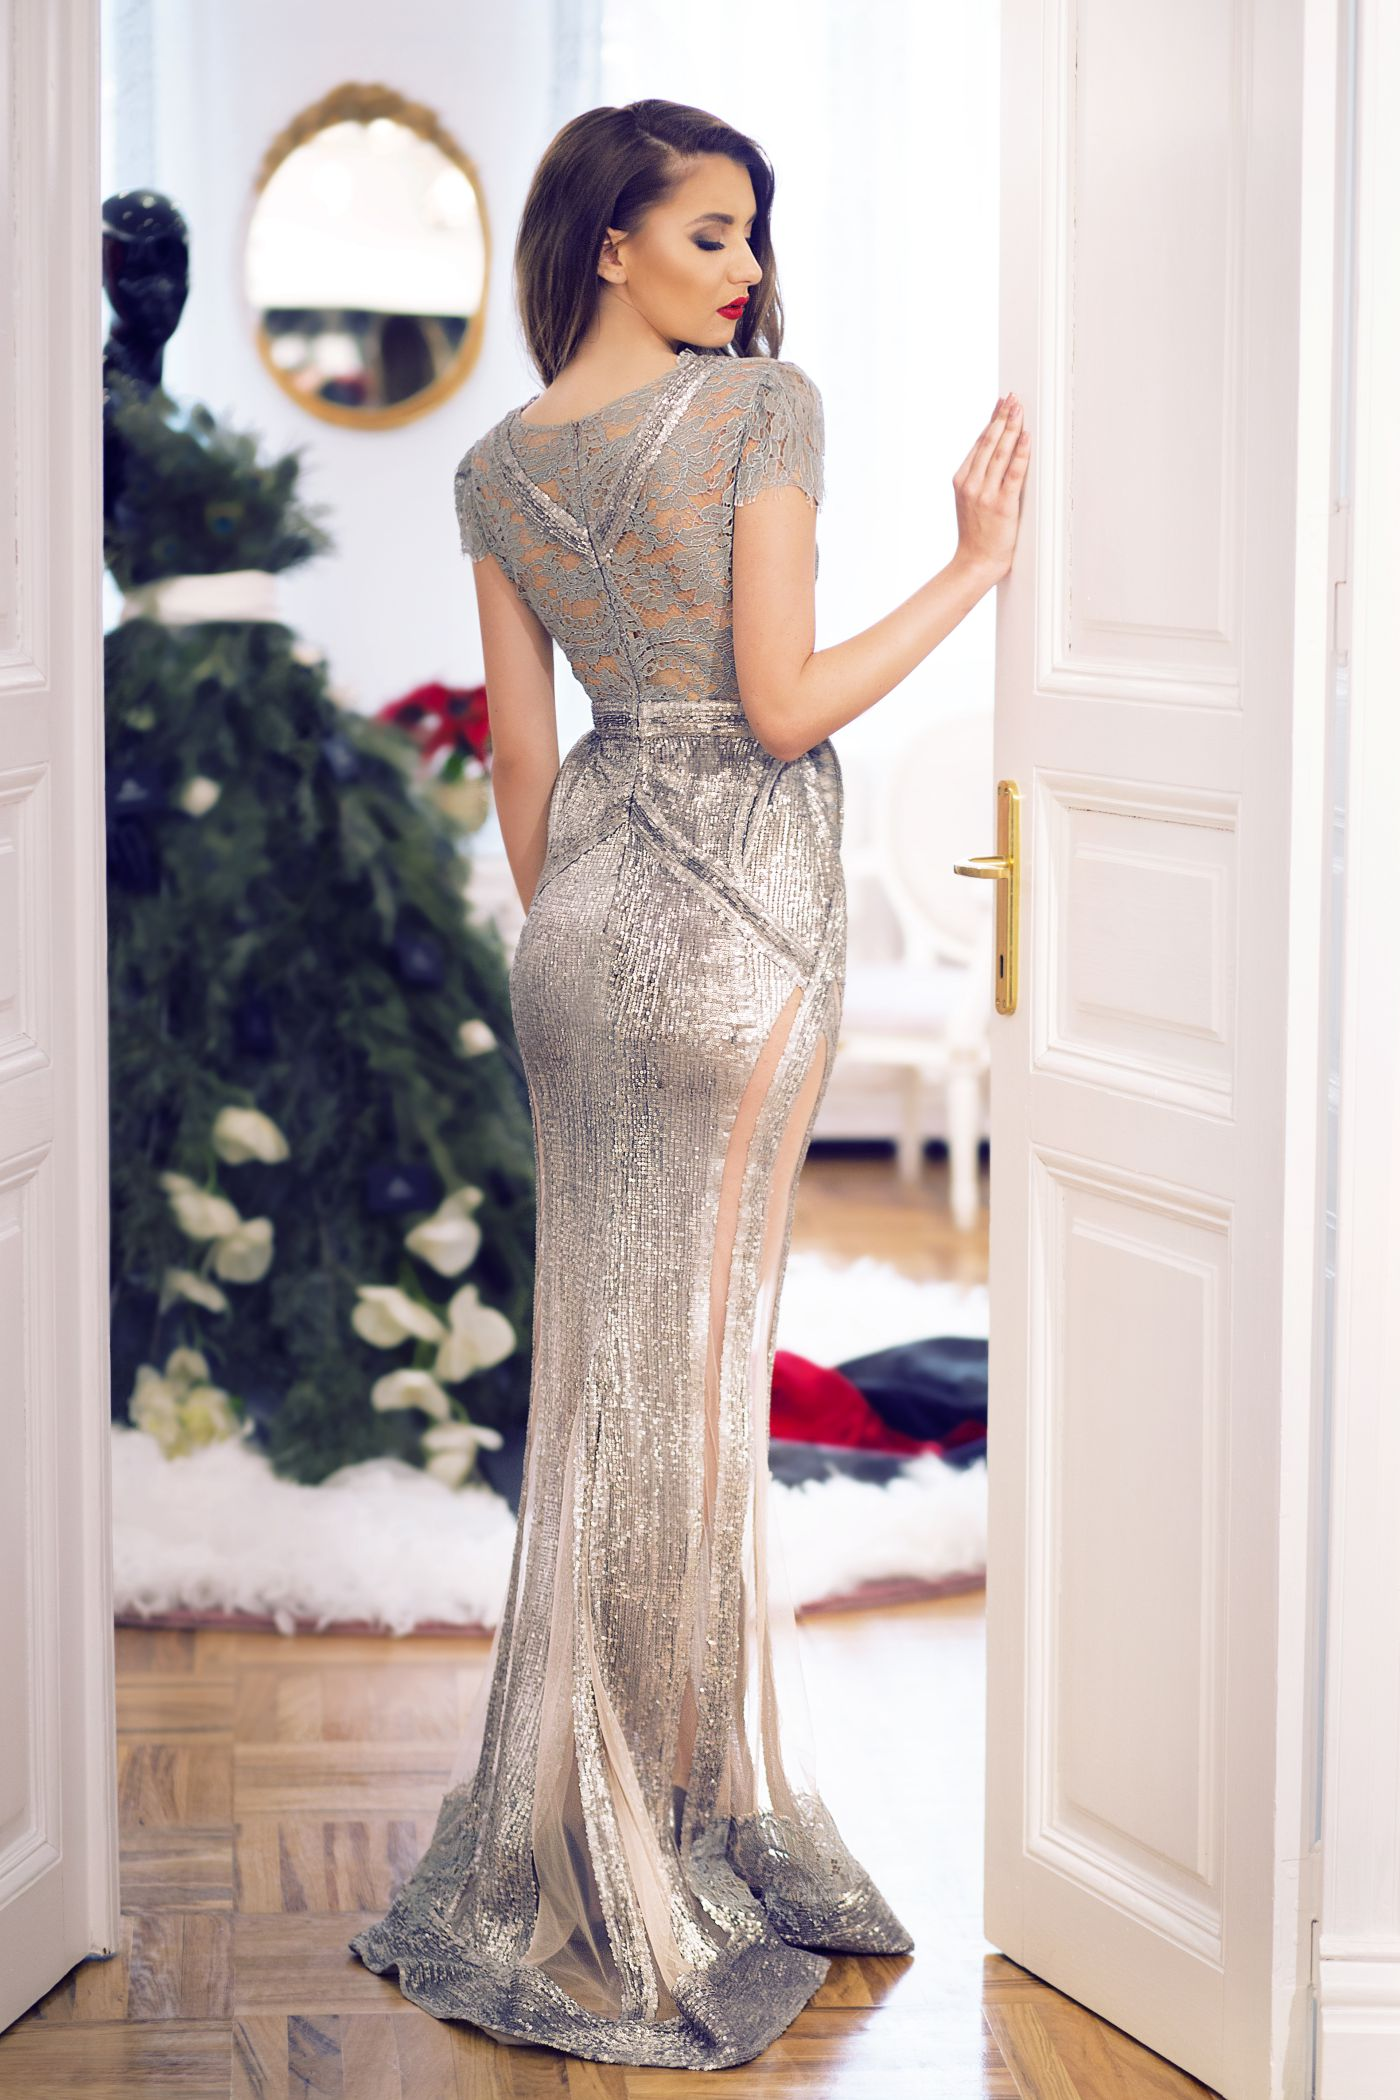 Cristallini, NYE, New Year's Eve,perfect dress, body shape, personality, dress code, length, gown dress, femme fatale, sophisticated, luxury, NYE dress, NYE 2016, Luana Codreanu, blog, blogger, fashion blog, fashion blogger, style, style blogger, hairstyle, makeup, ootd, outfit, street style, AW2015, trends, fashion, Talmaciu Claudiu, Andra Preda, make-up artist, photographer.